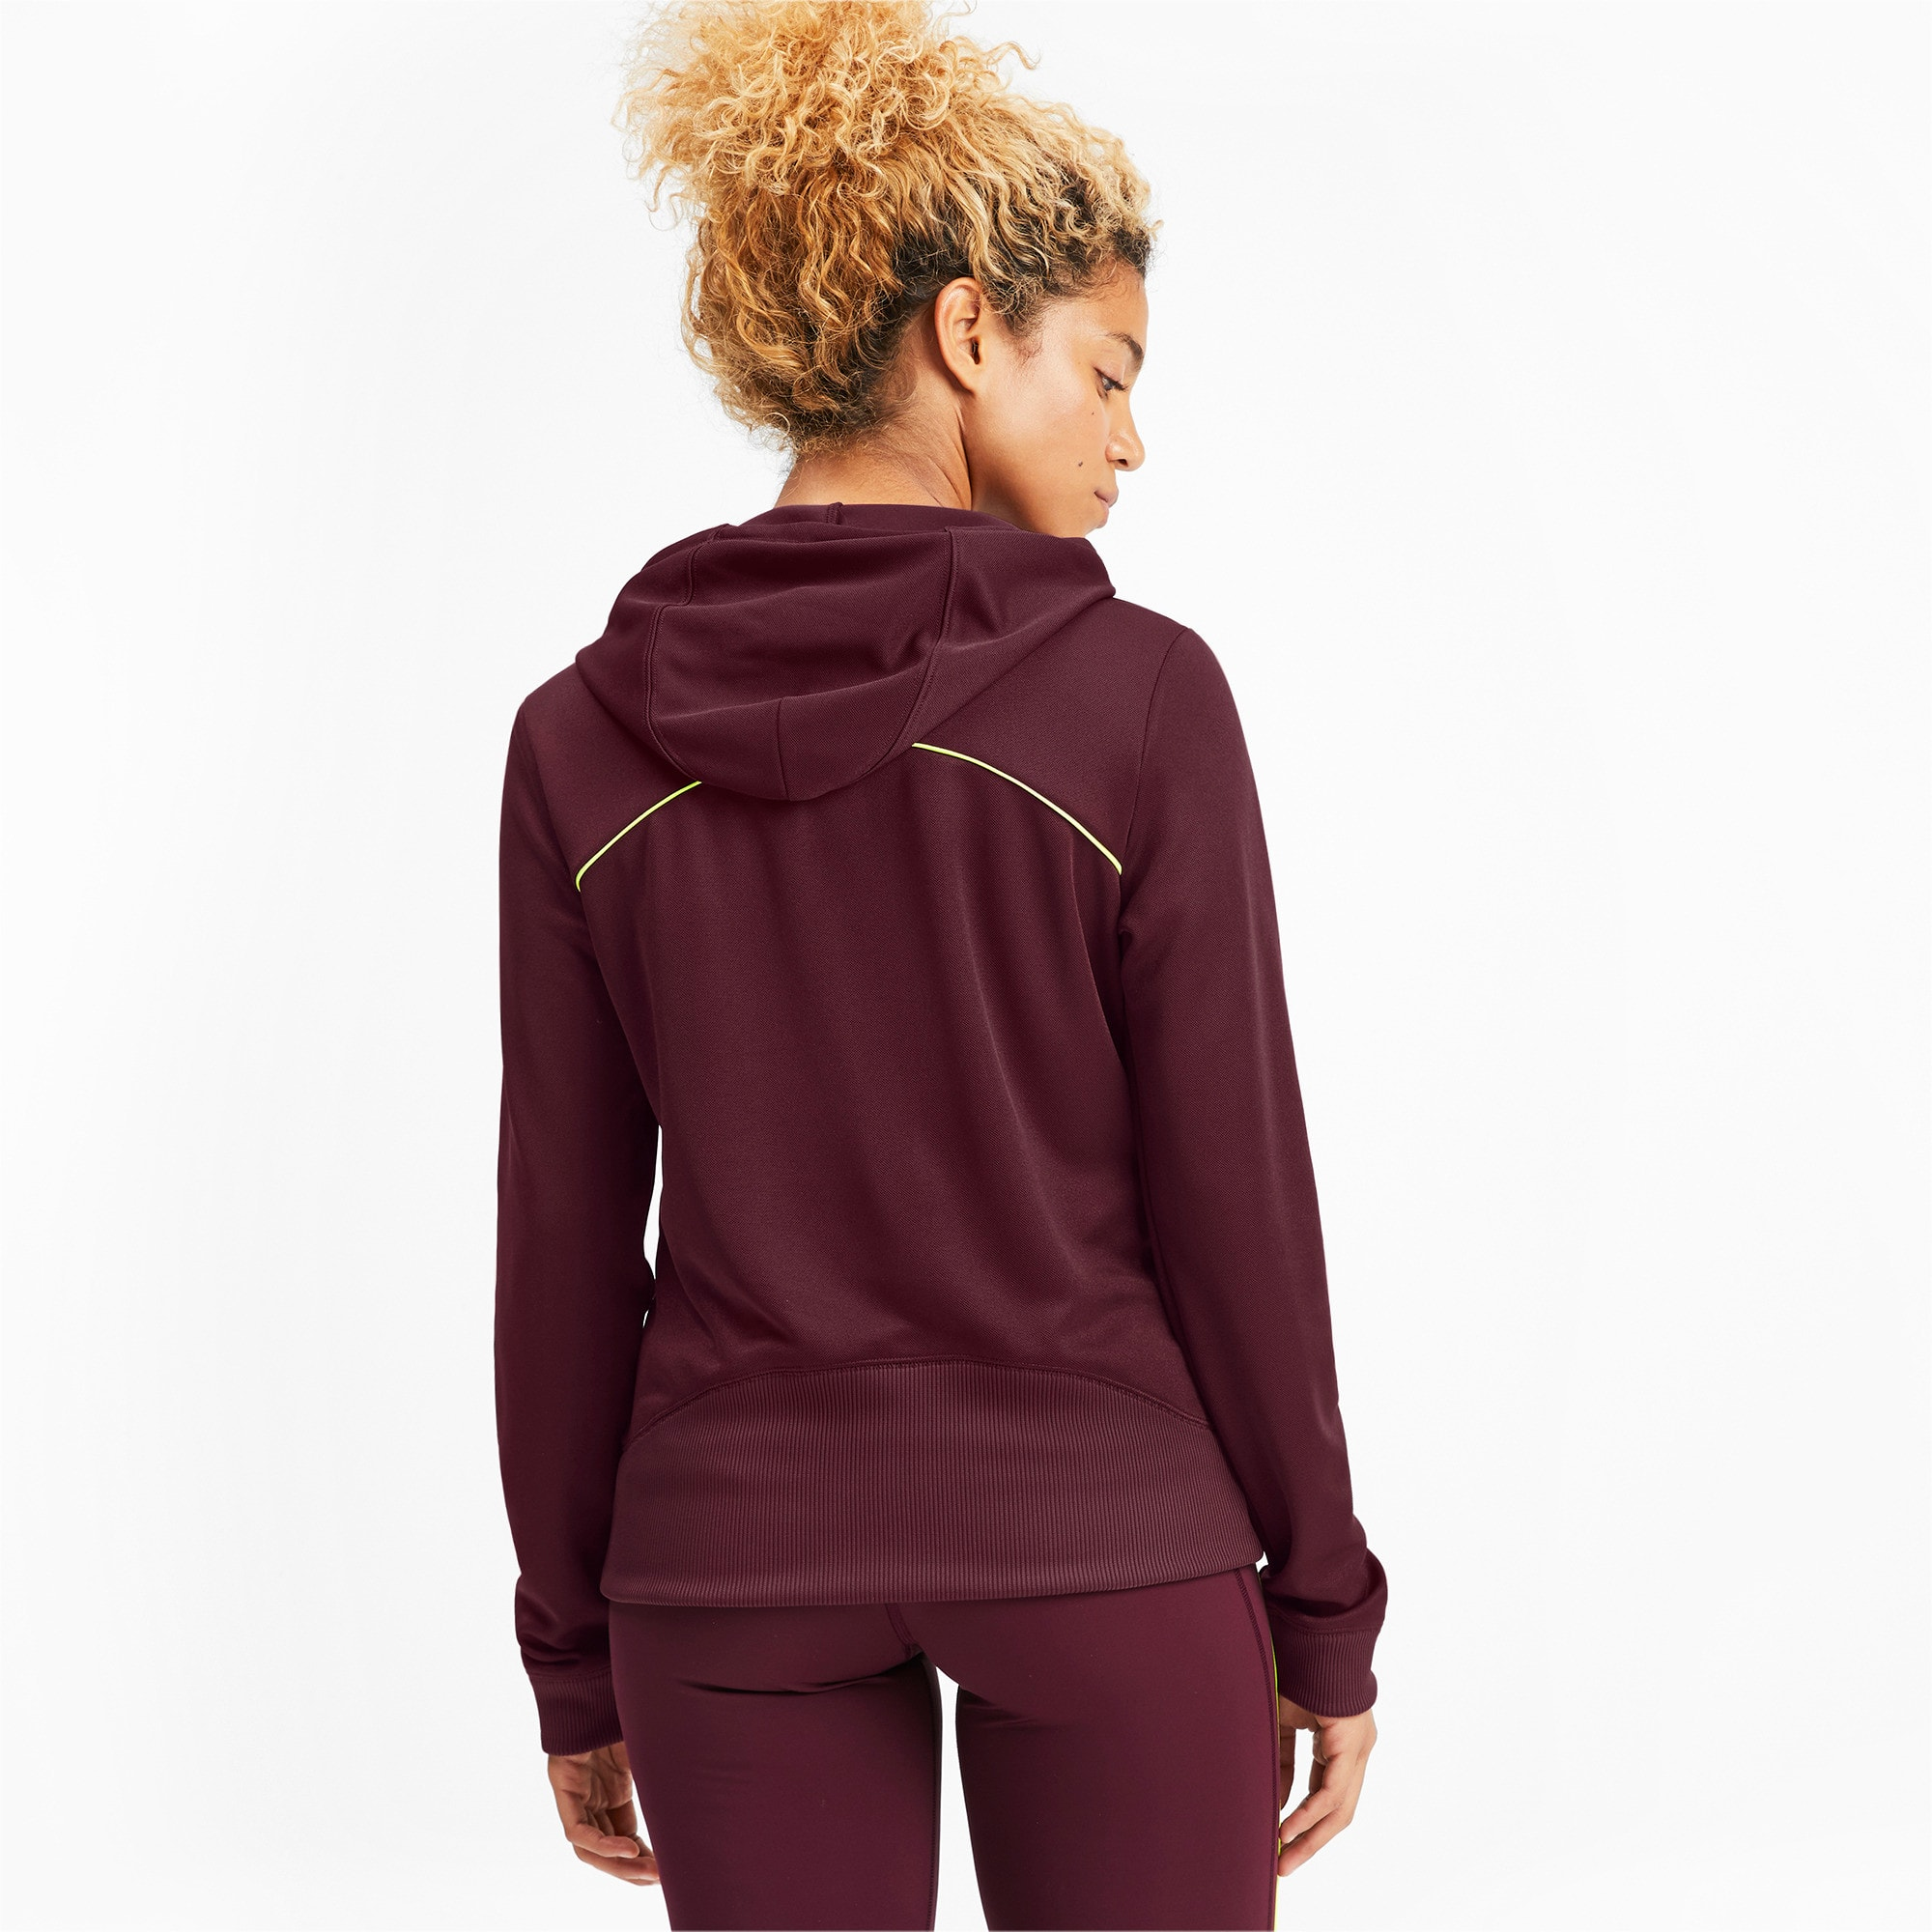 Thumbnail 2 of SHIFT Women's Training Hoodie, Vineyard Wine, medium